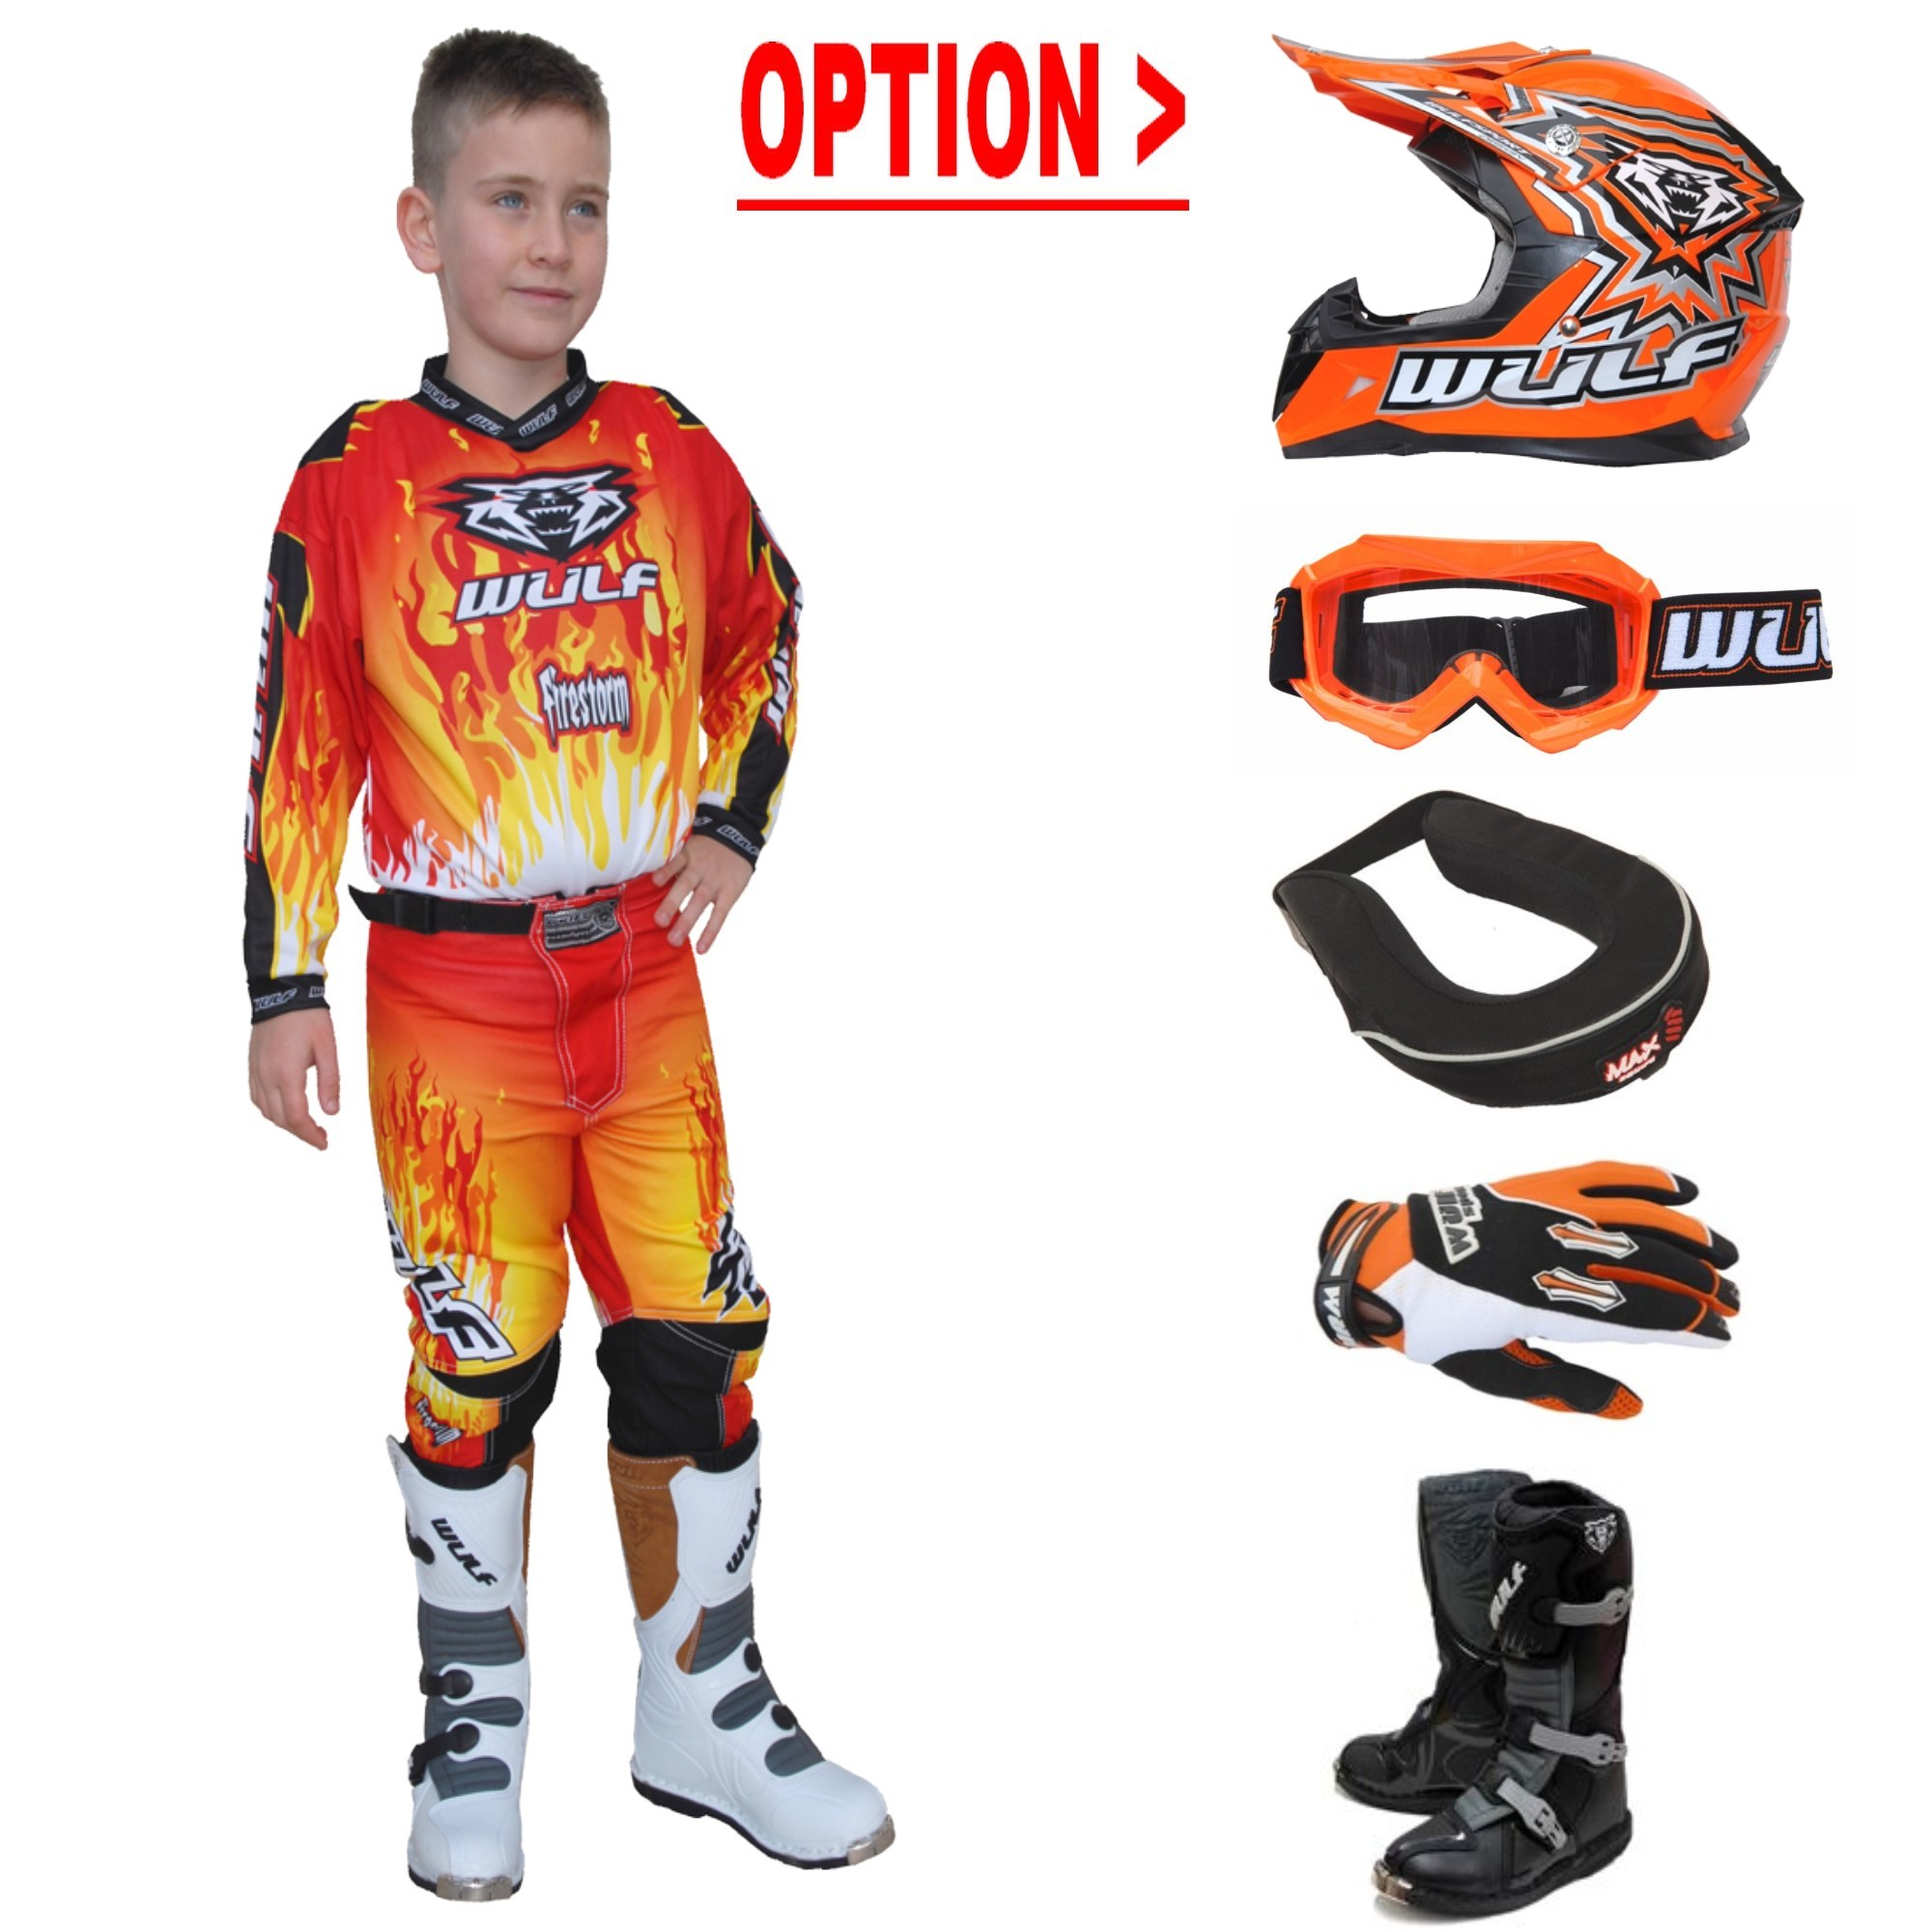 TENUE A OPTIONS ENFANT WULF STORM ROUGE ORANGE 4 à 14a T20 à 28